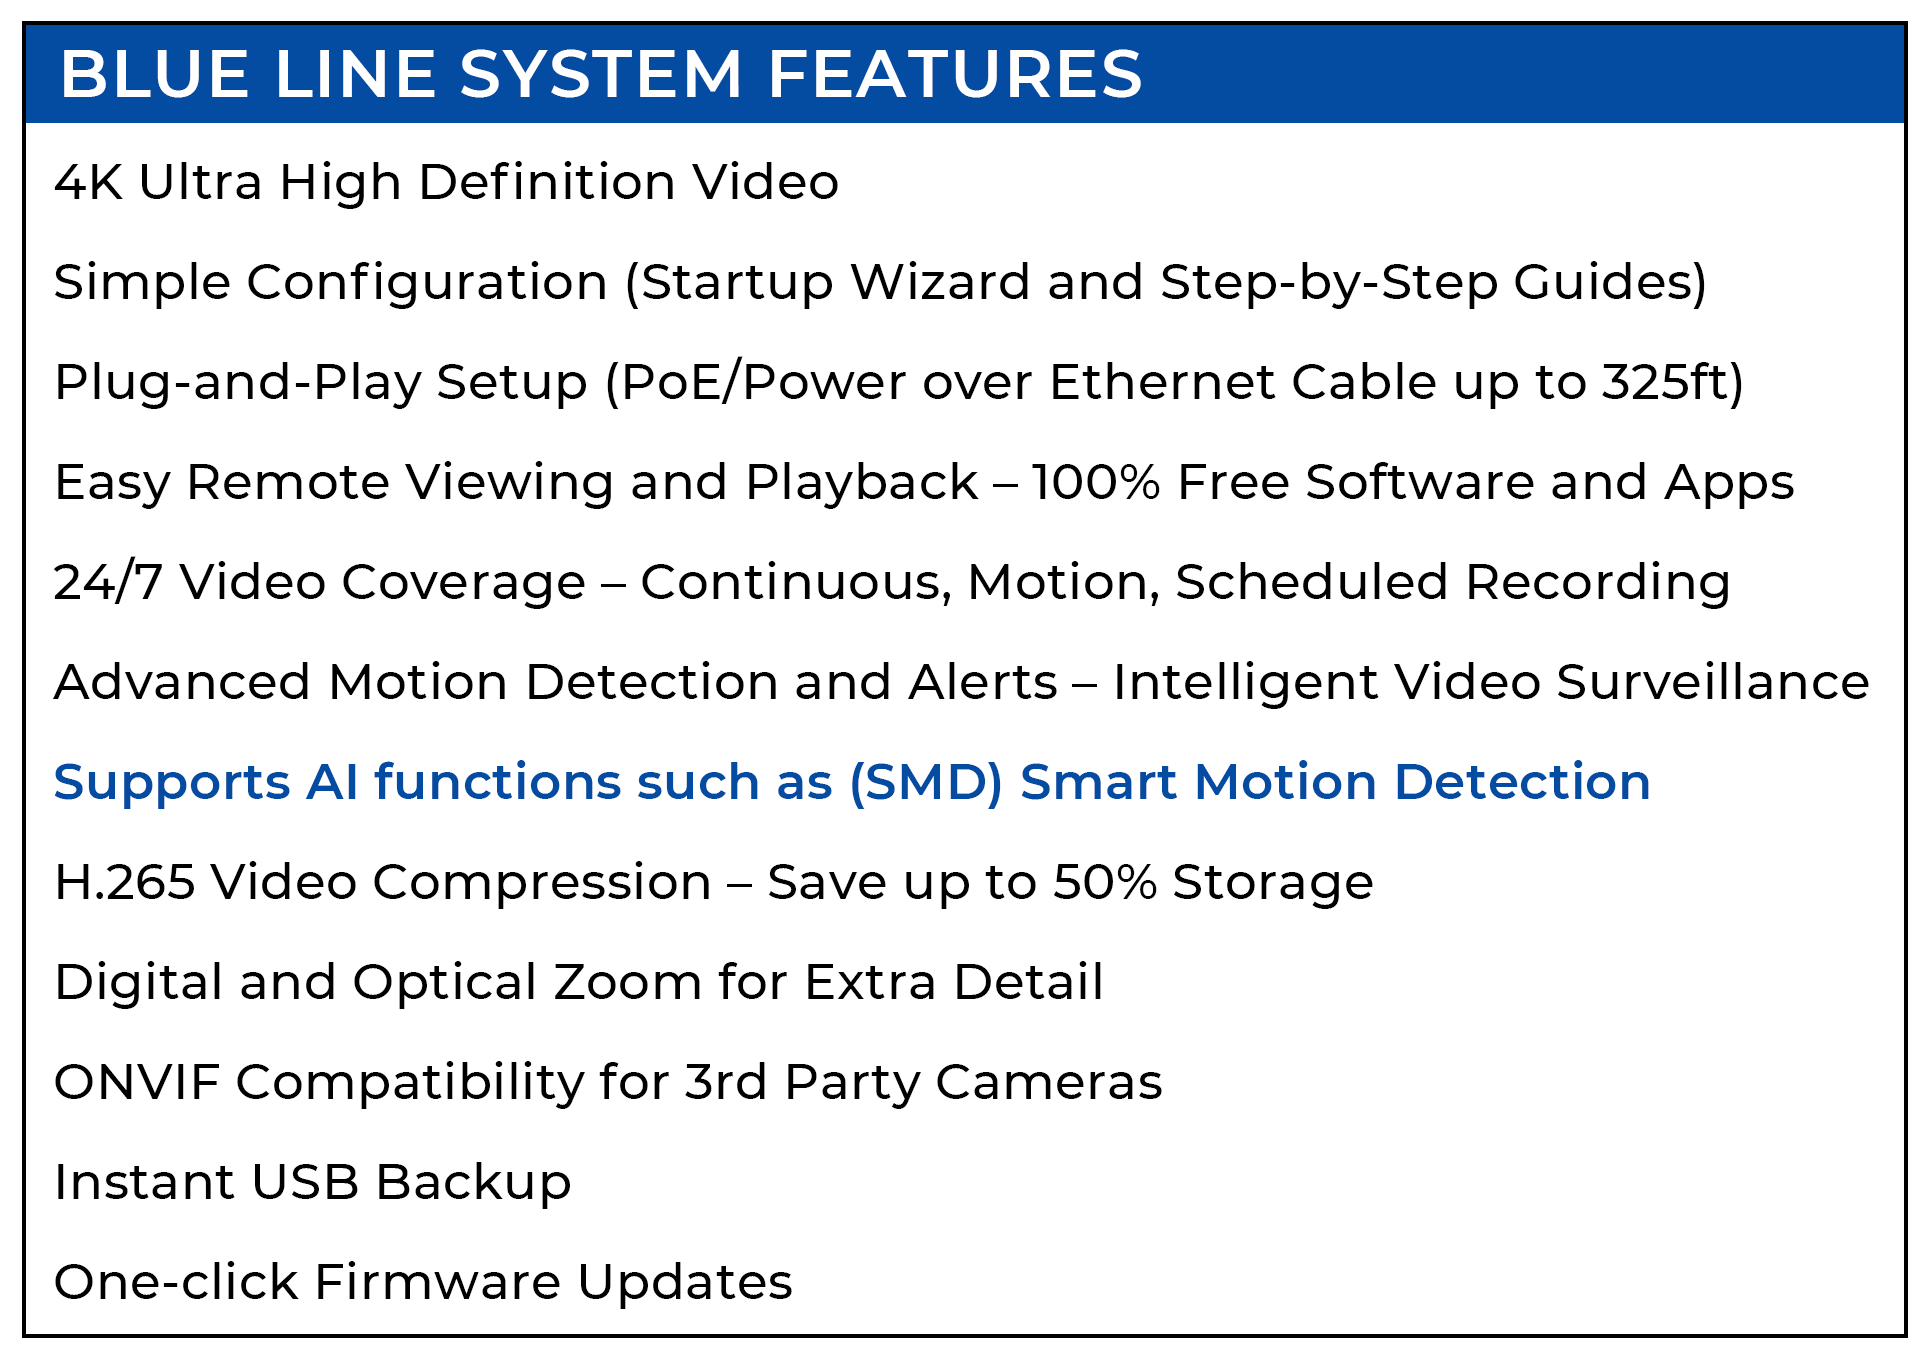 blue-line-system-features2.png